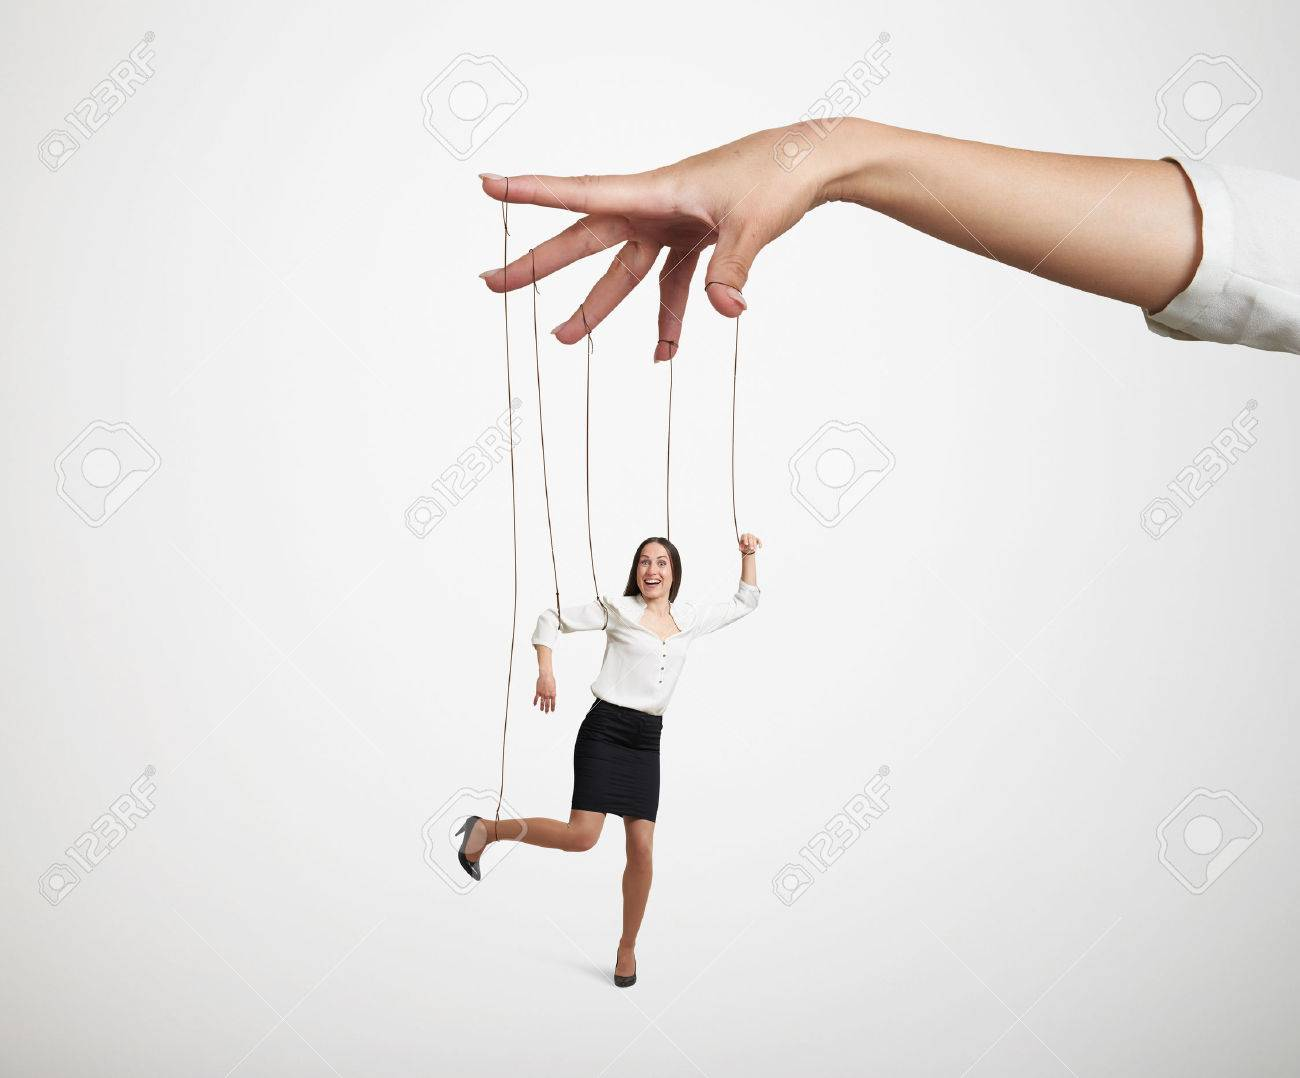 womans hand manipulating the small puppet over light grey background - 40300754